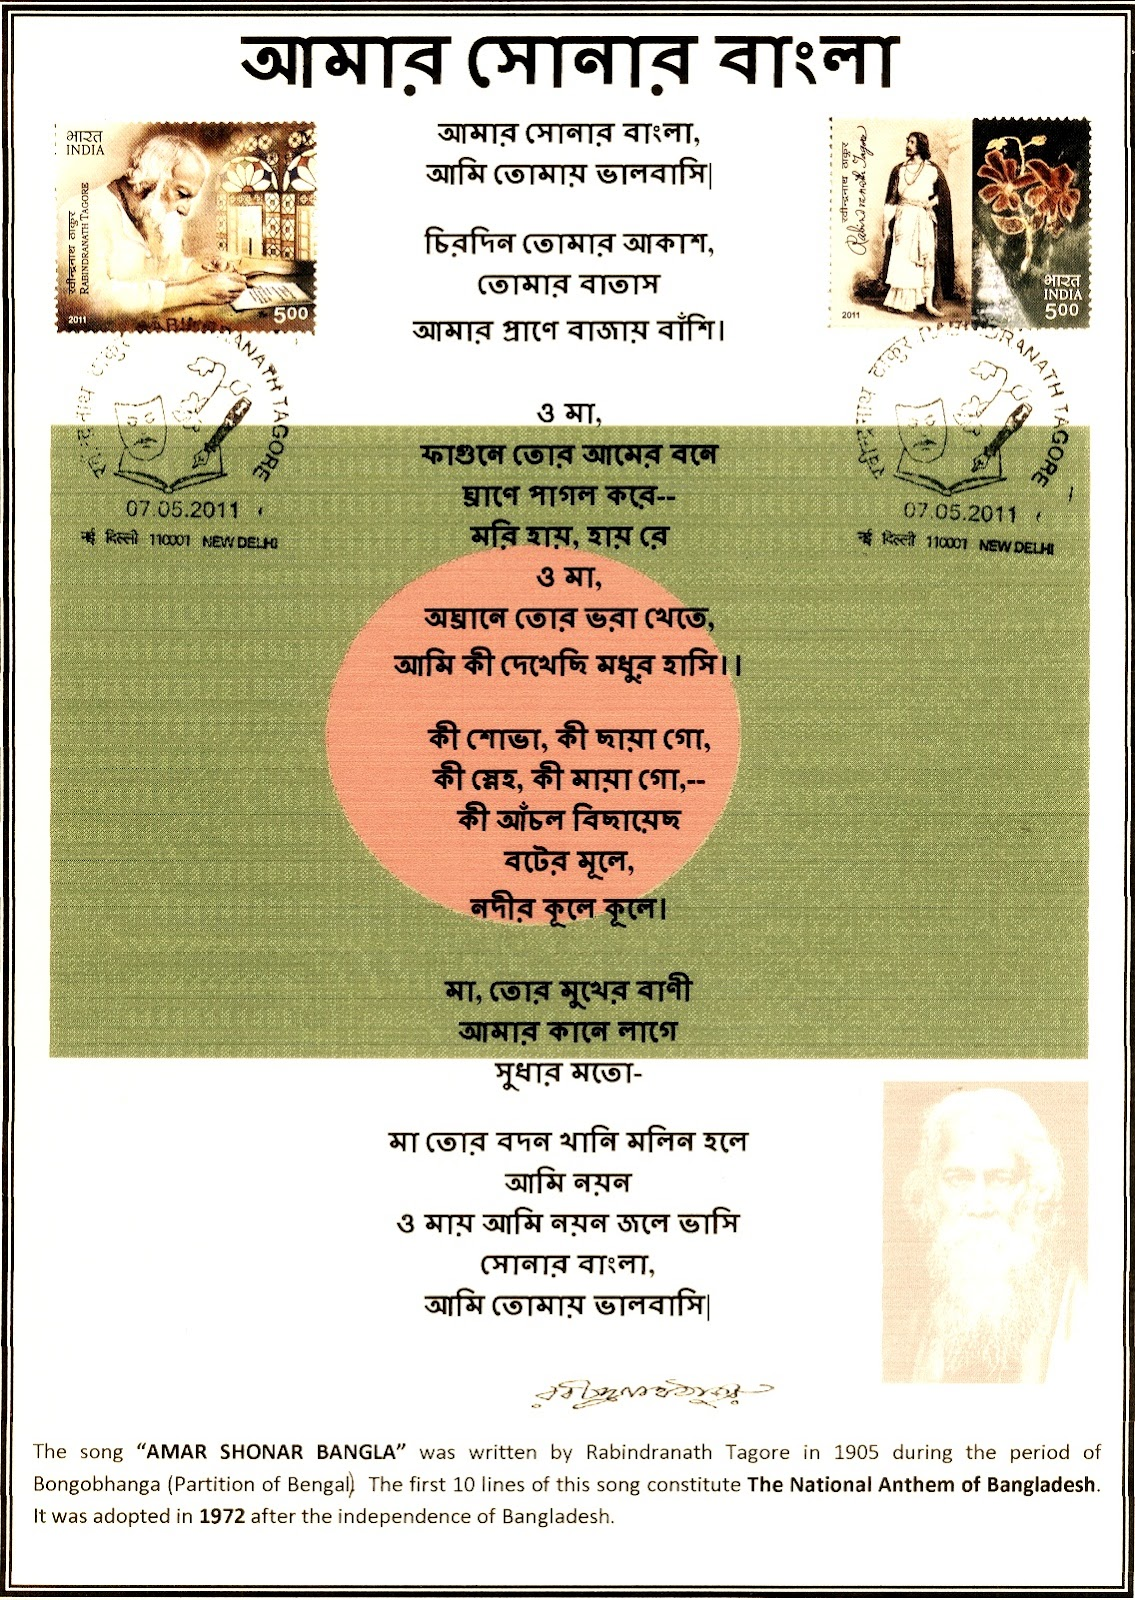 rabindranath tagore a versatile genius legends treasures when he was 8 years old he wrote a poem he published his collection of poems at the age of 16 years he wrote in his mother tongue bangla but after